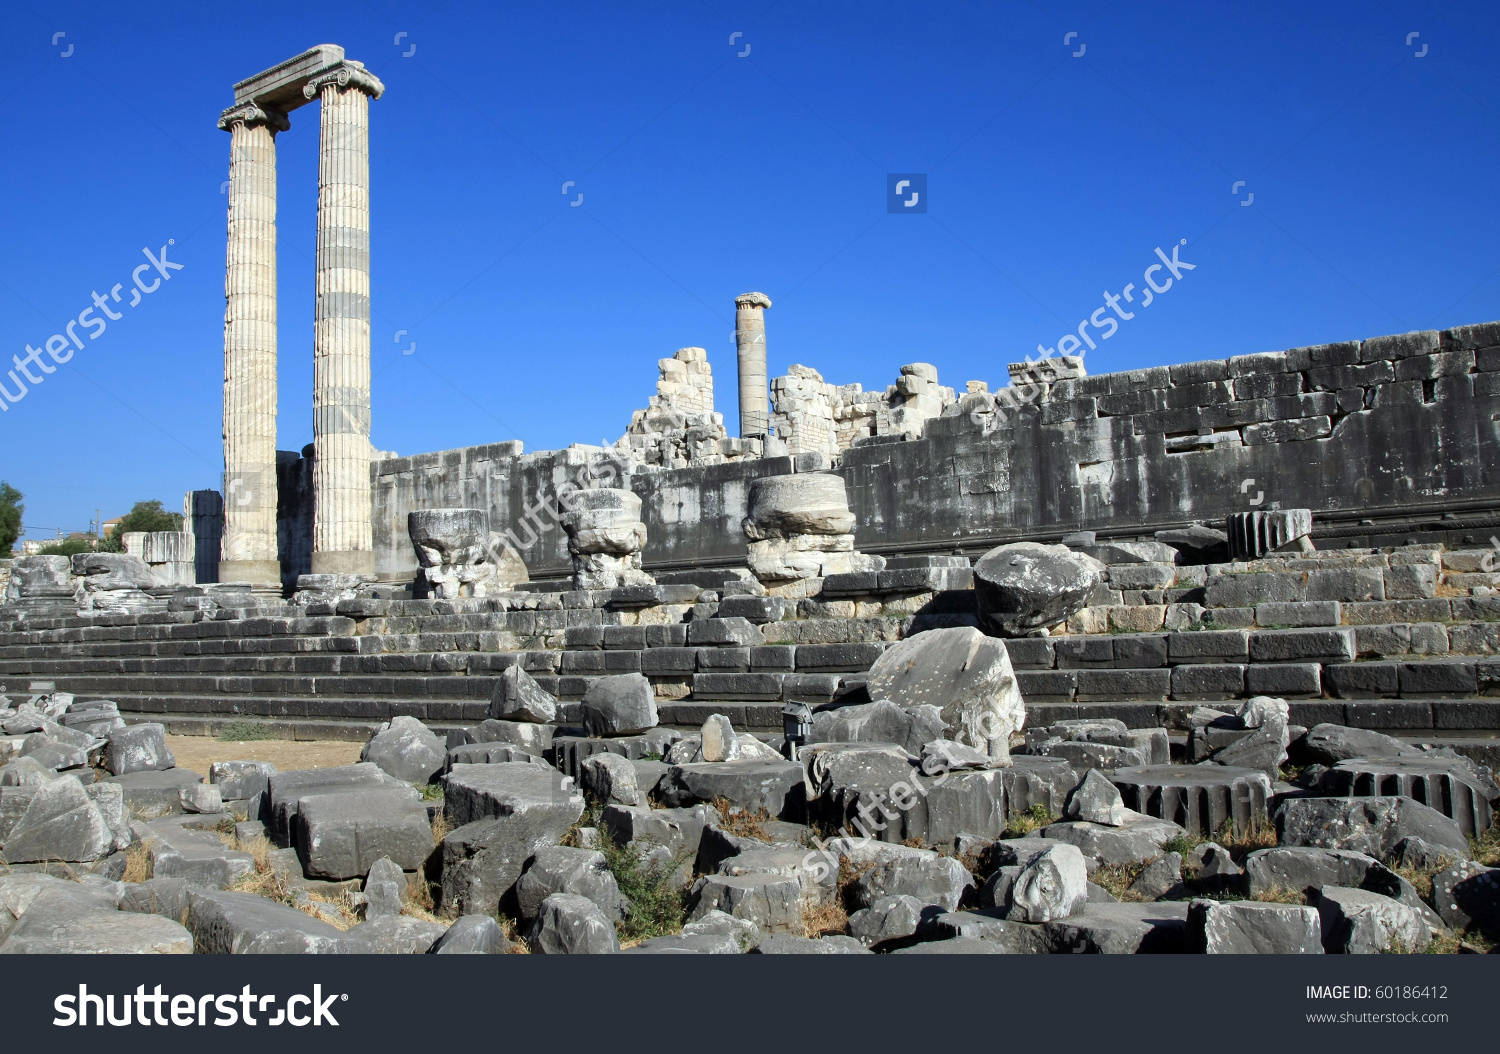 A View Of Temple Of Apollo In Antique City Of Didyma, Aydin Stock.